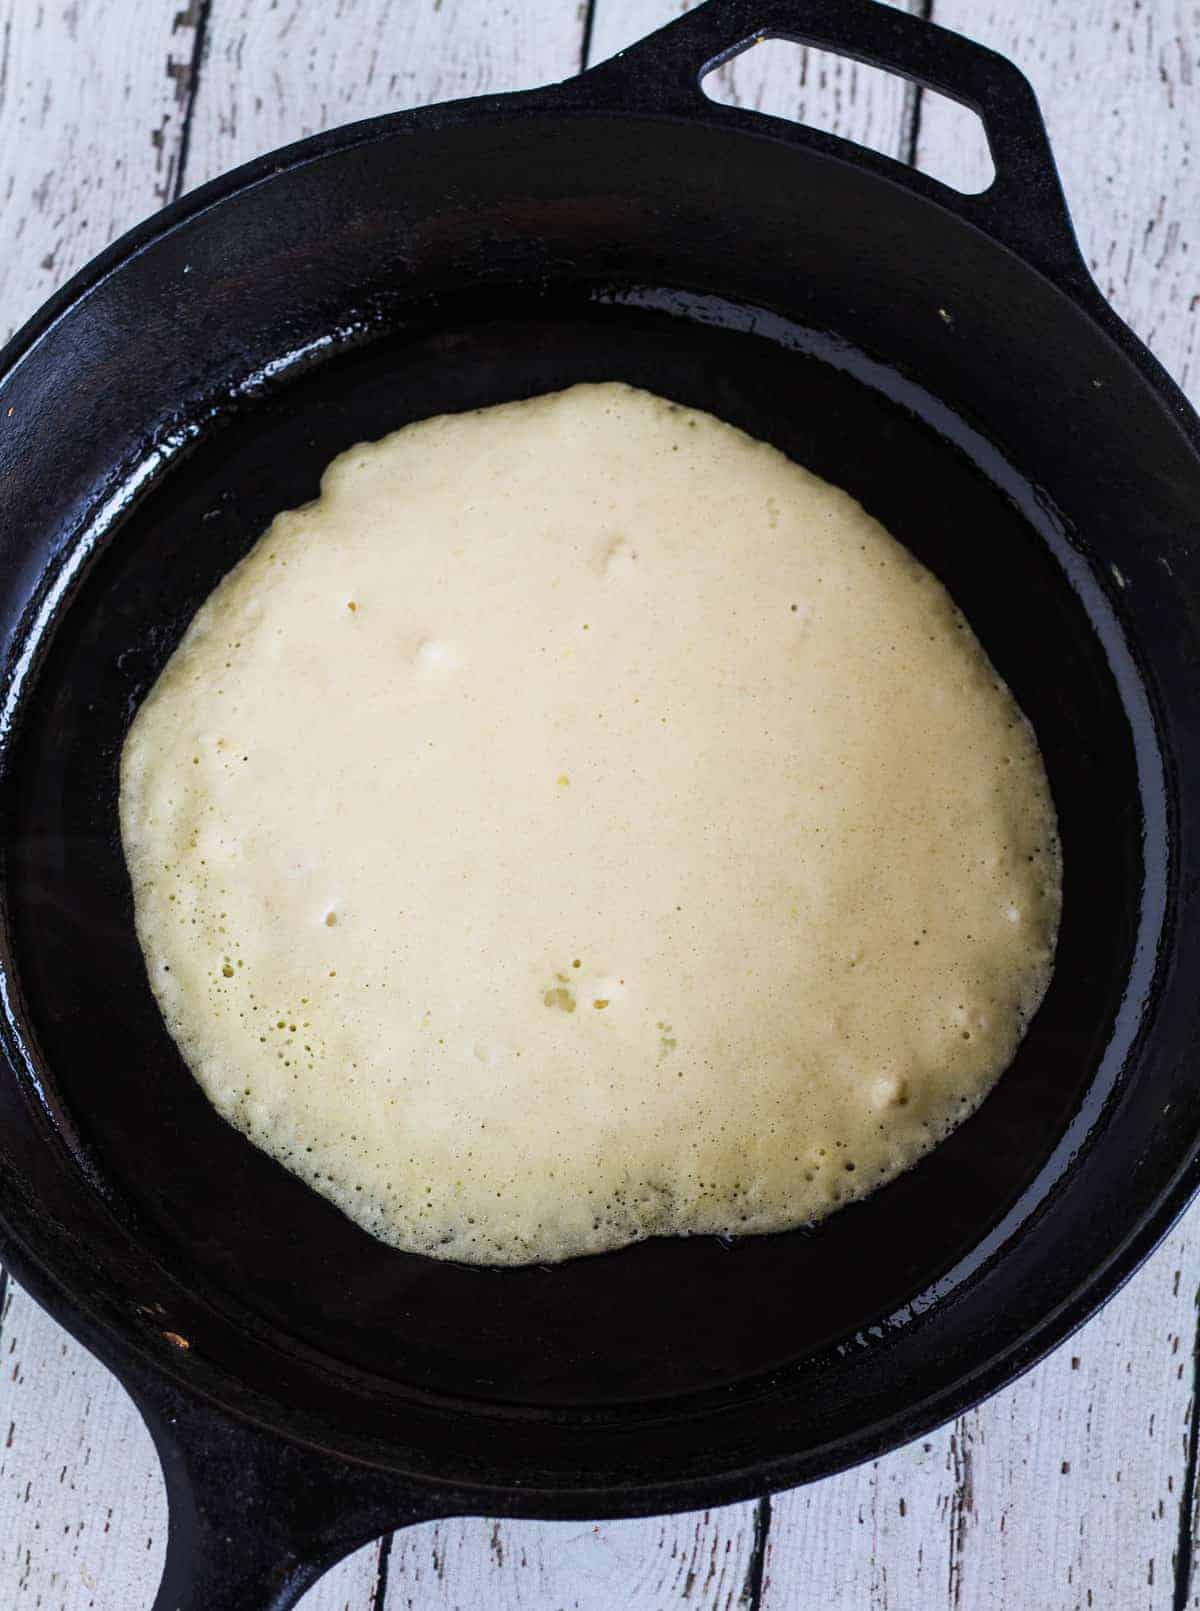 Tortilla cooking in cast iron skillet